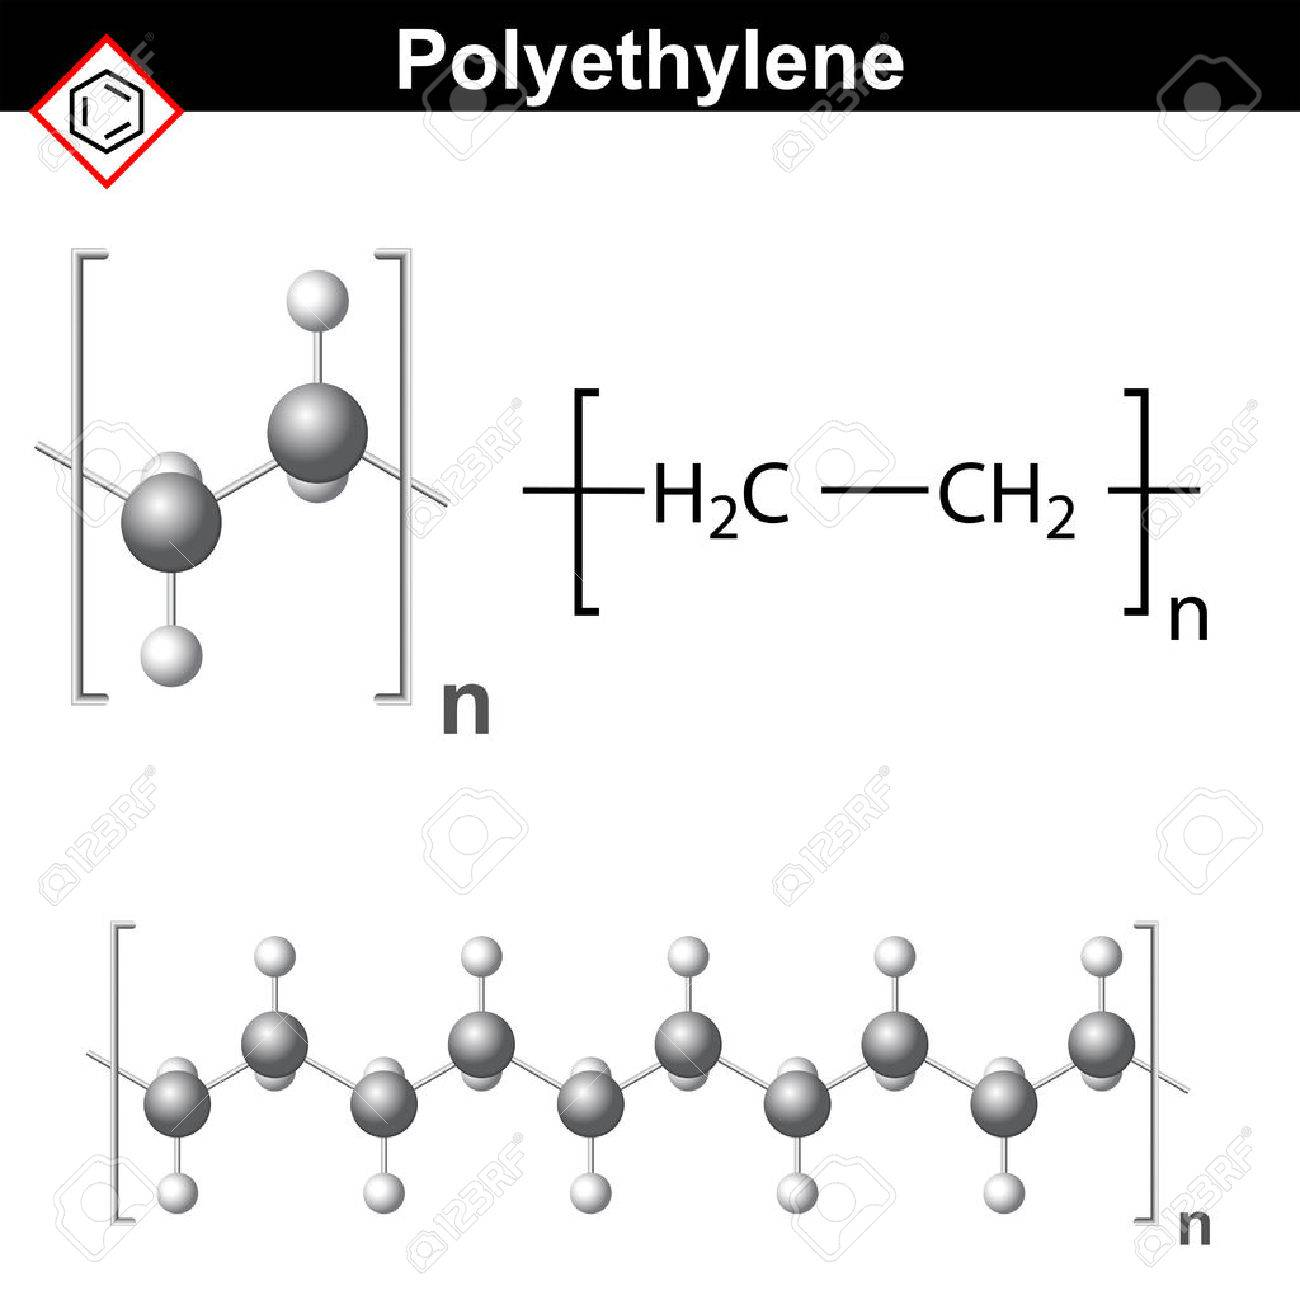 Structural chemical formula and model of polyethylene molecule - 45466631